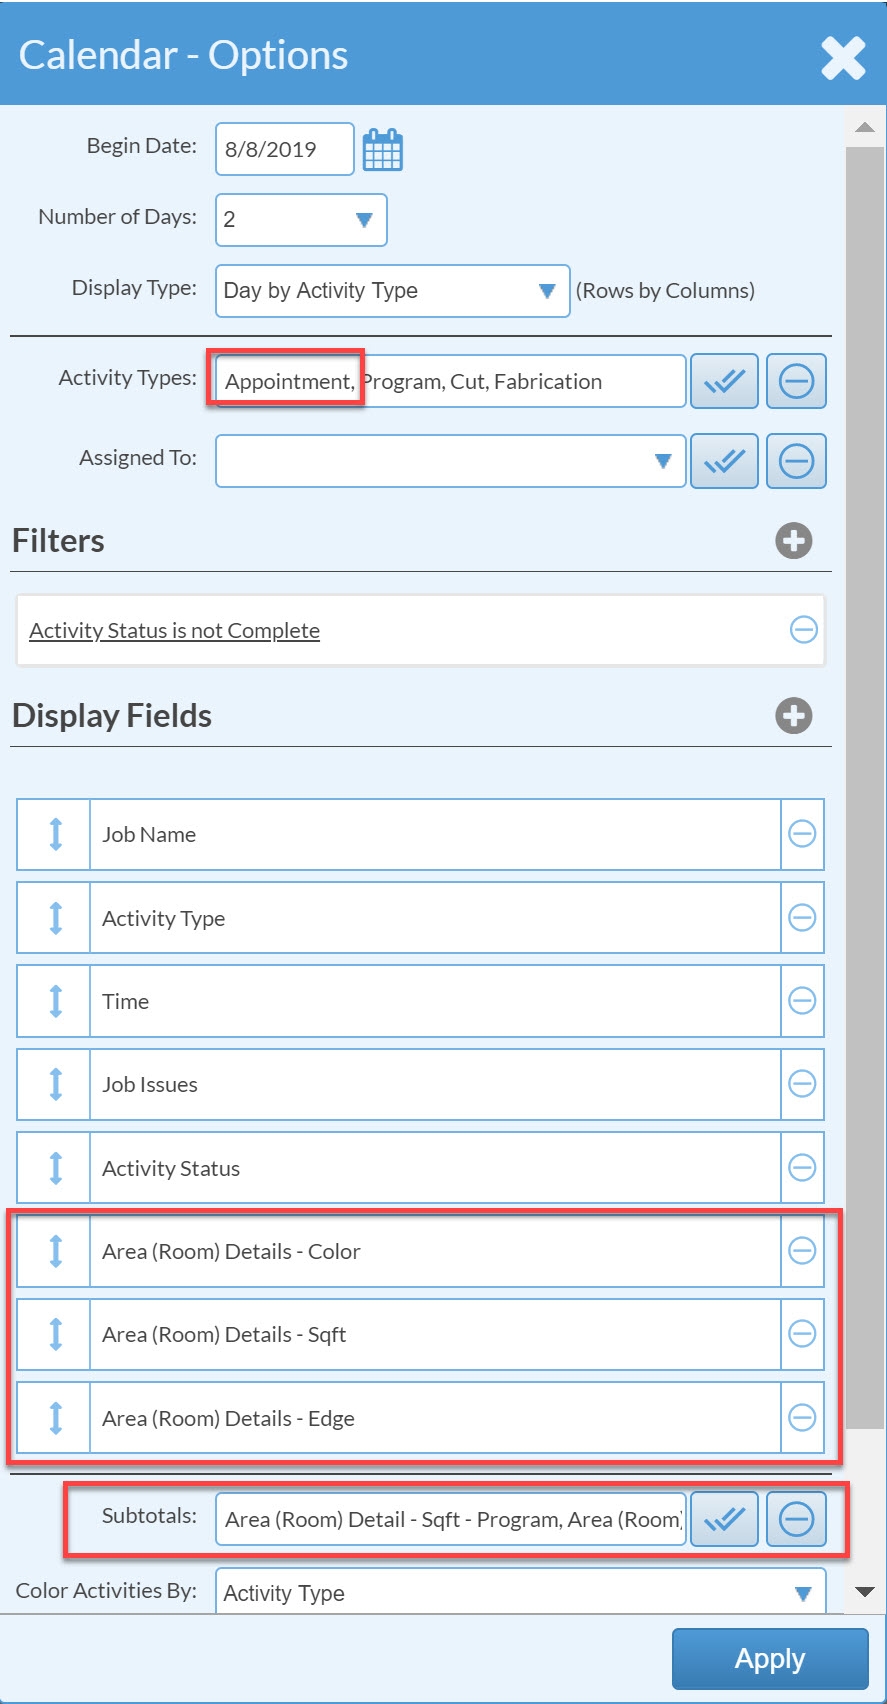 Edit display fields in calendar options